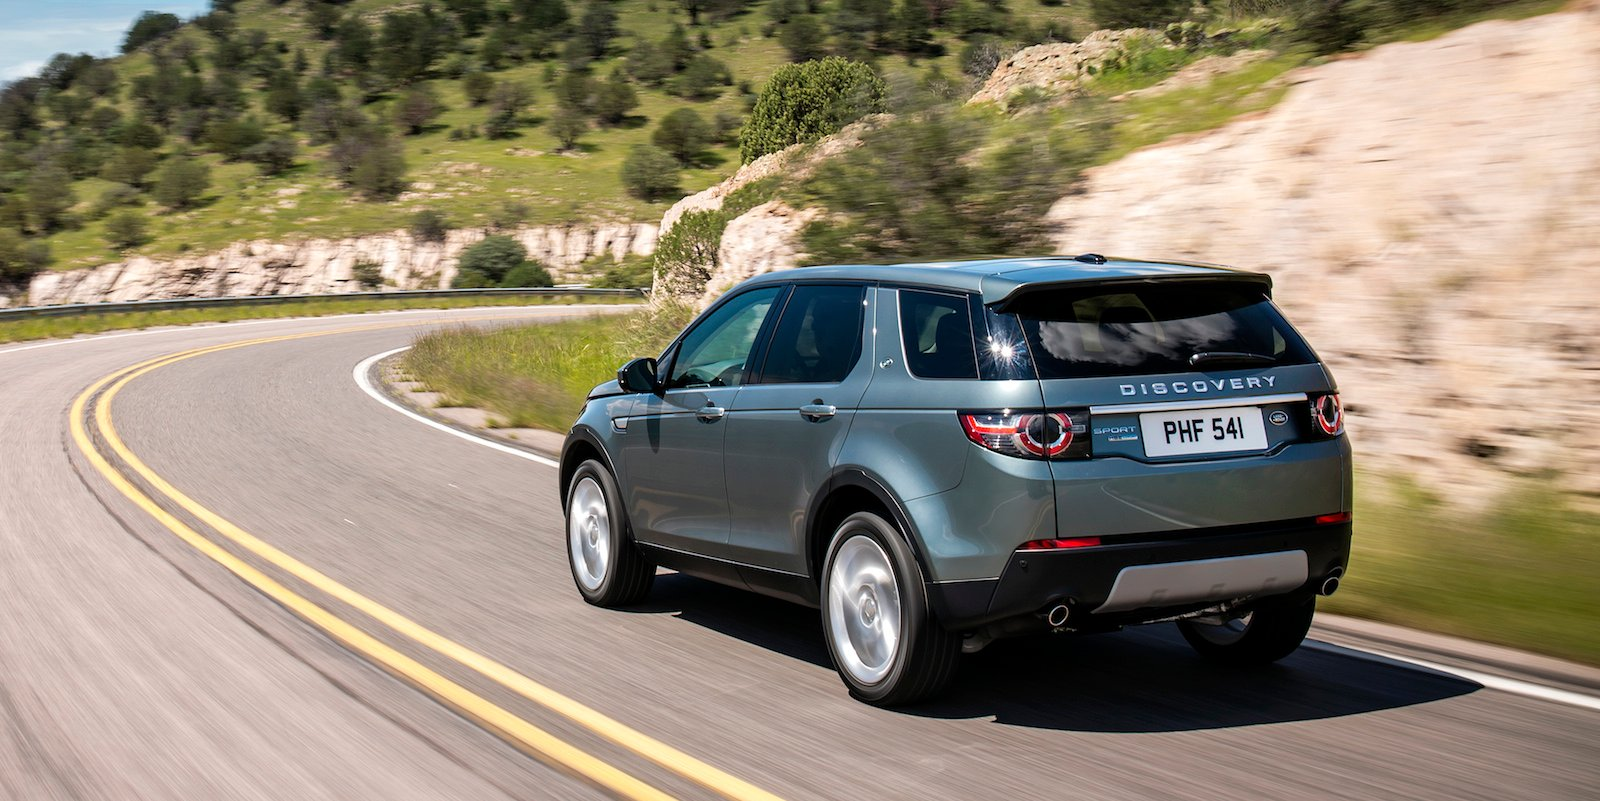 land rover discovery sport 2wd a chance for australia photos 1 of 4. Black Bedroom Furniture Sets. Home Design Ideas